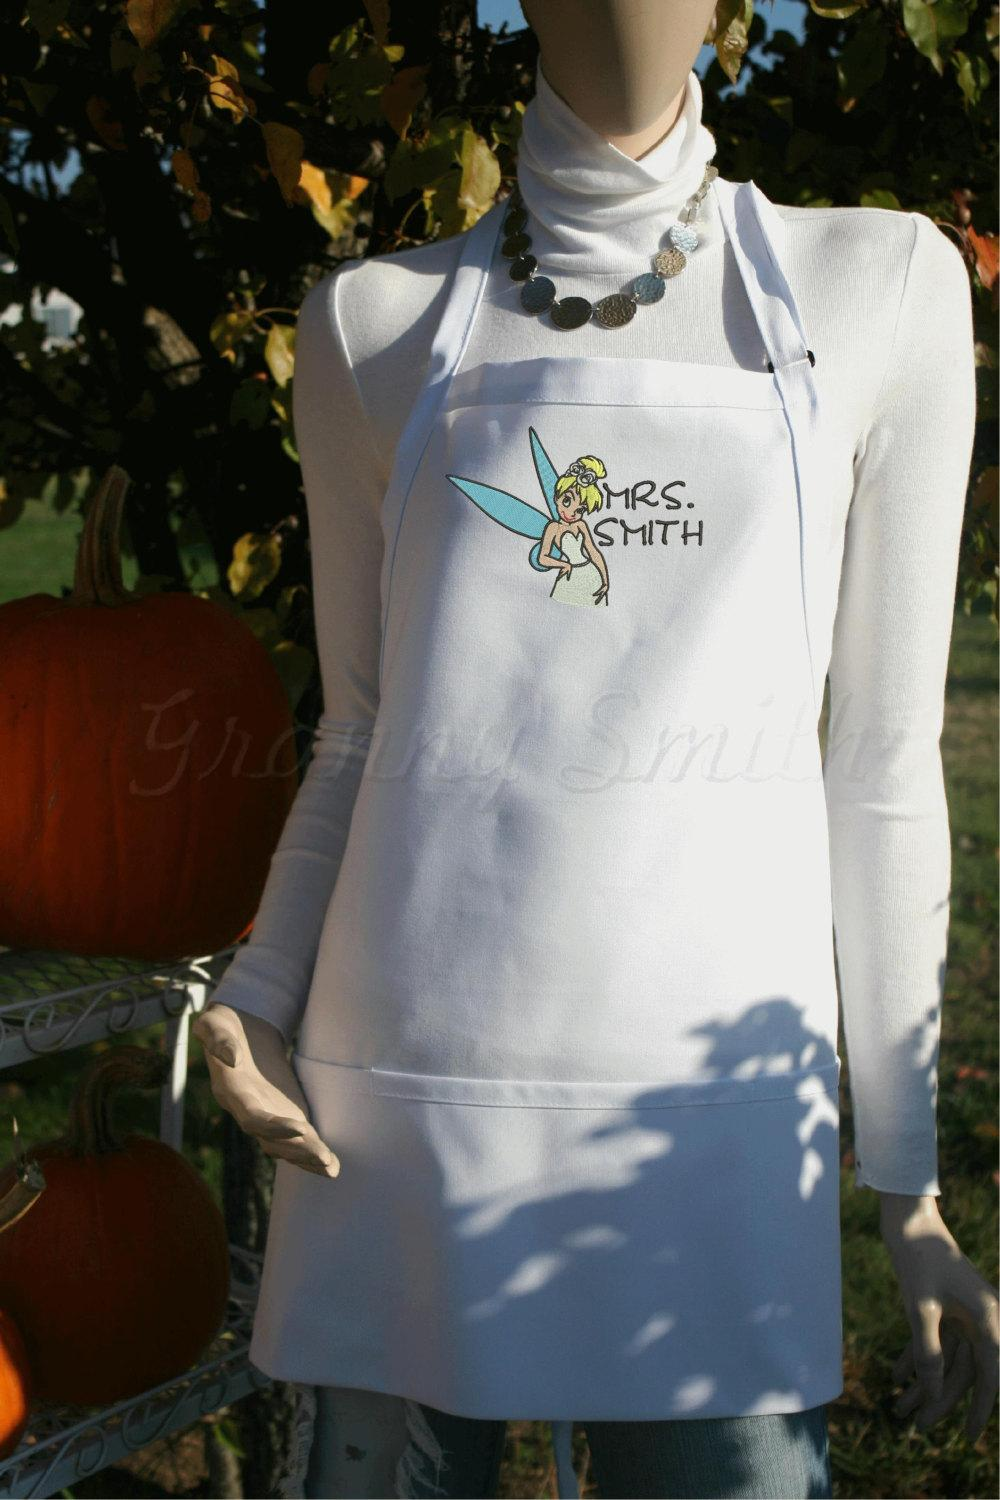 Tinkerbell embroidery design in a wedding dress apron — white